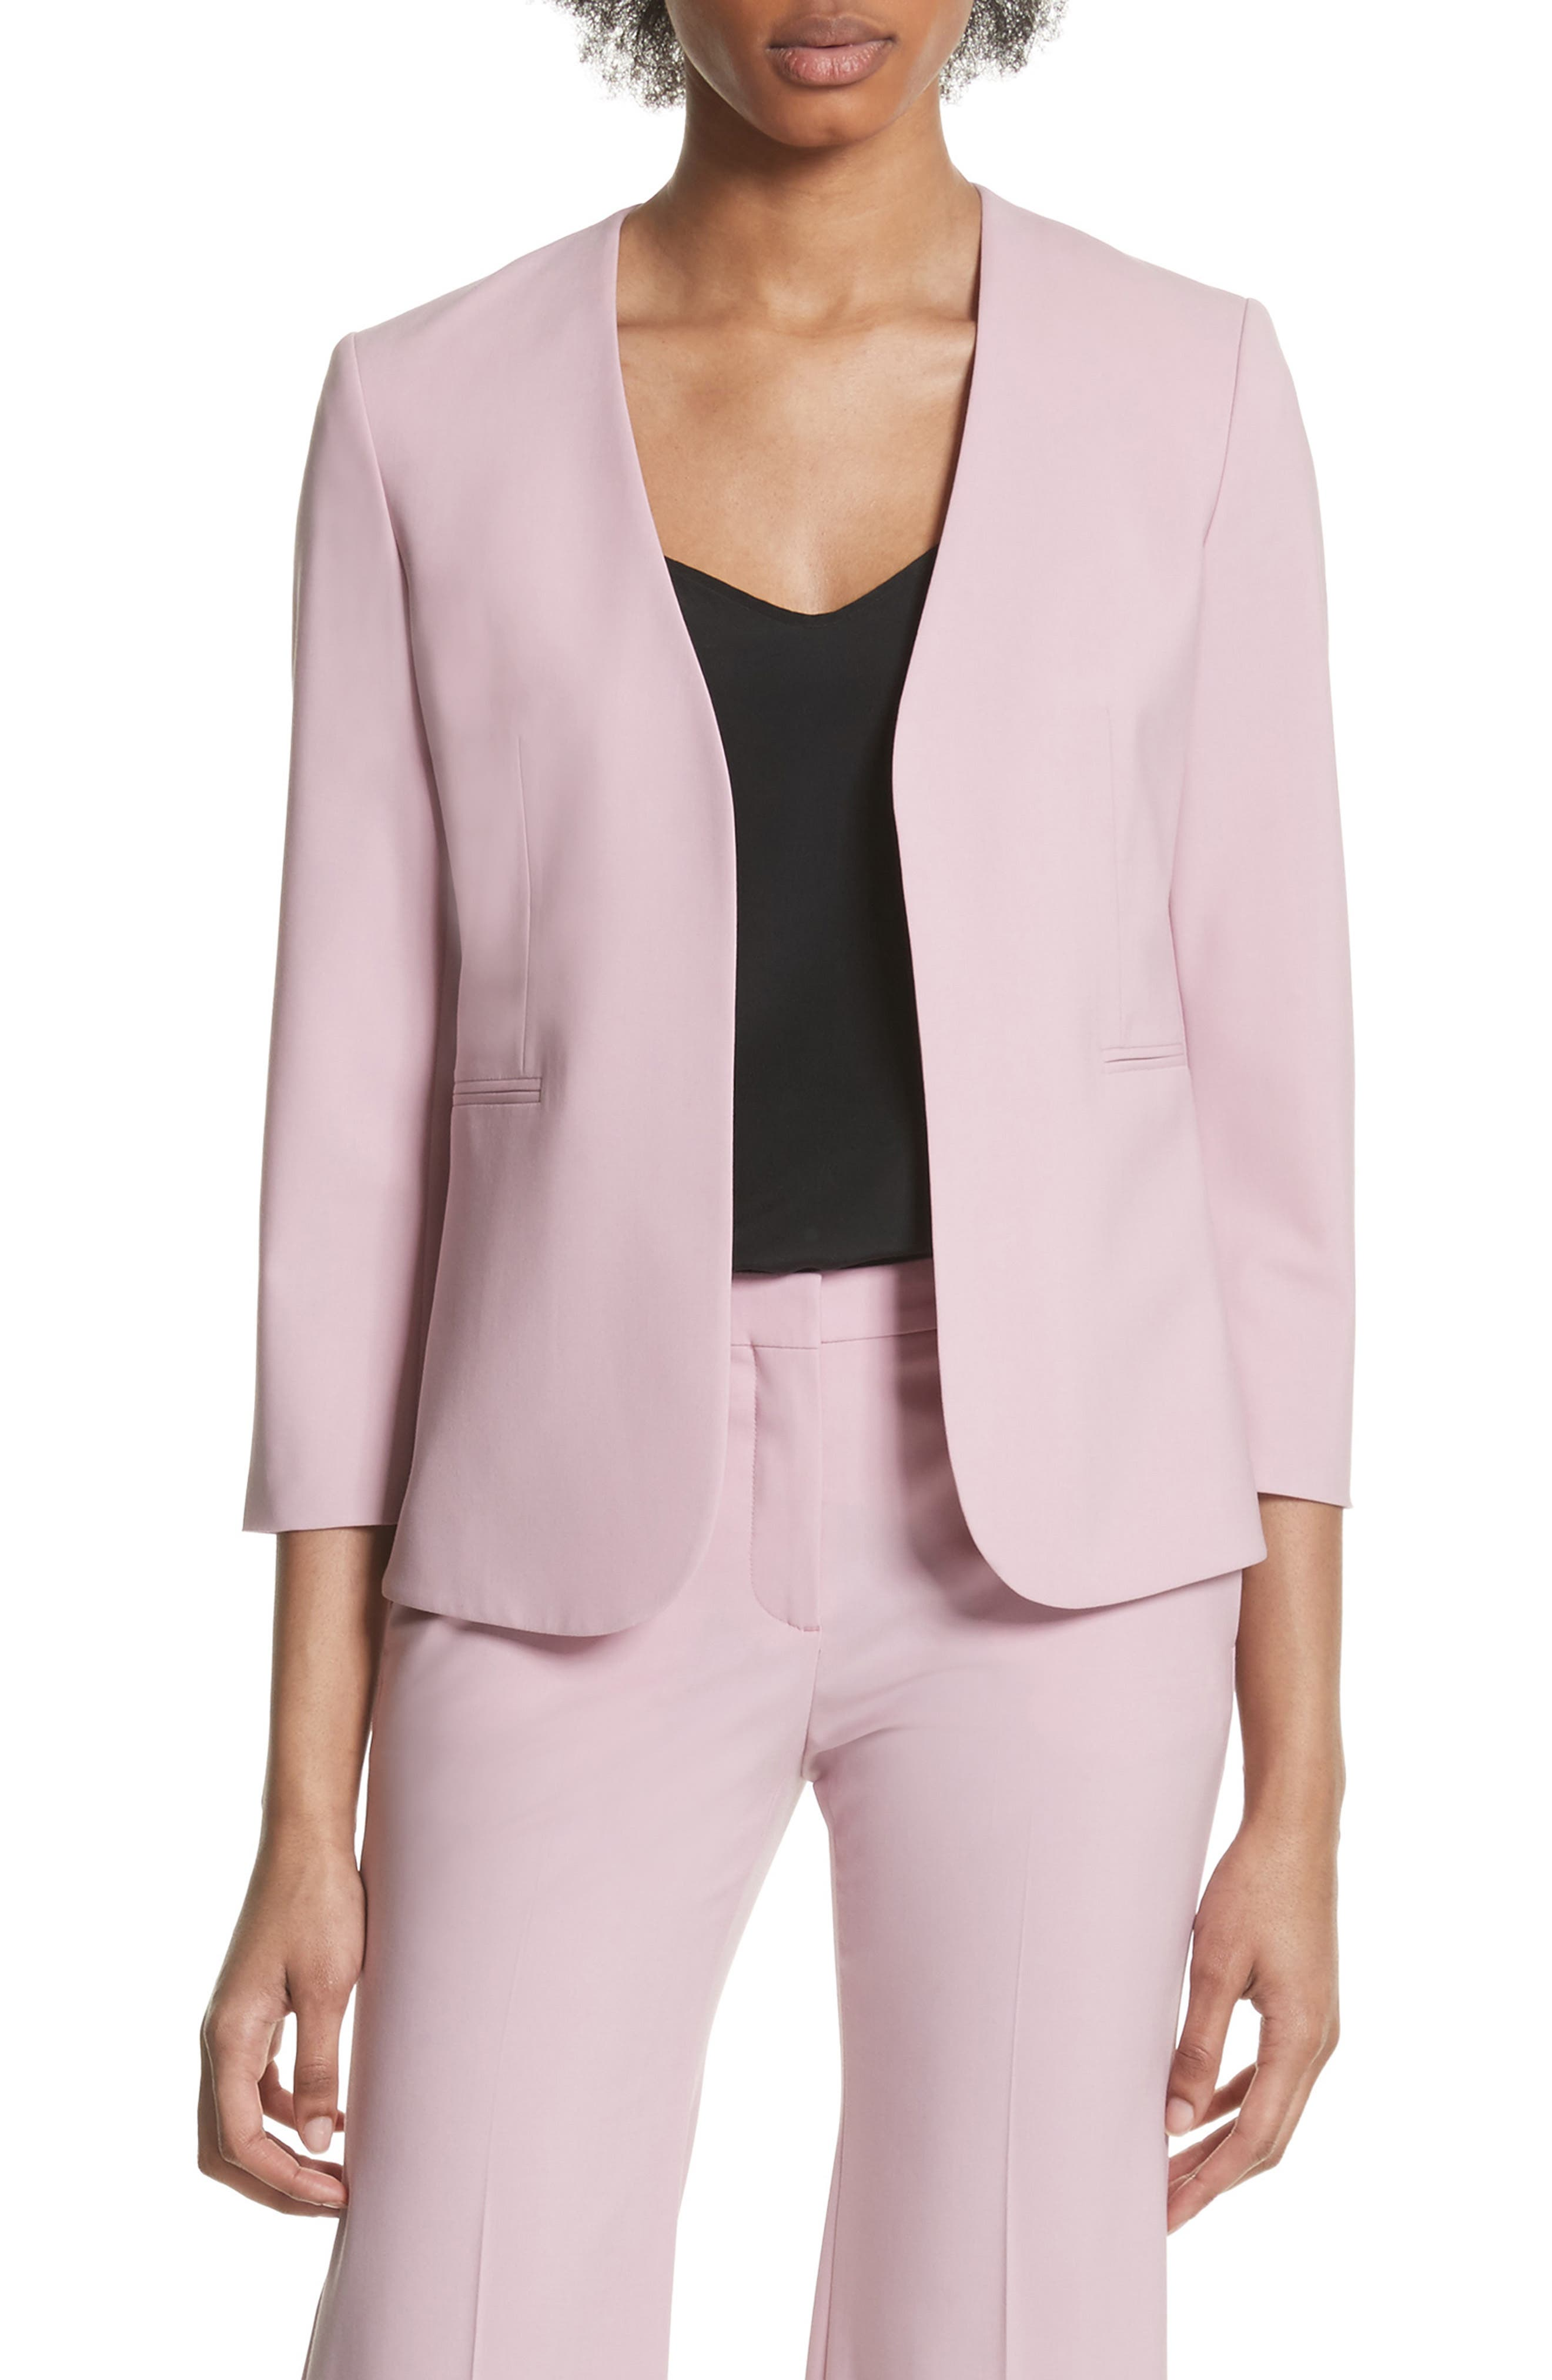 Lindrayia B Good Wool Suit Jacket,                         Main,                         color, Berry Tint